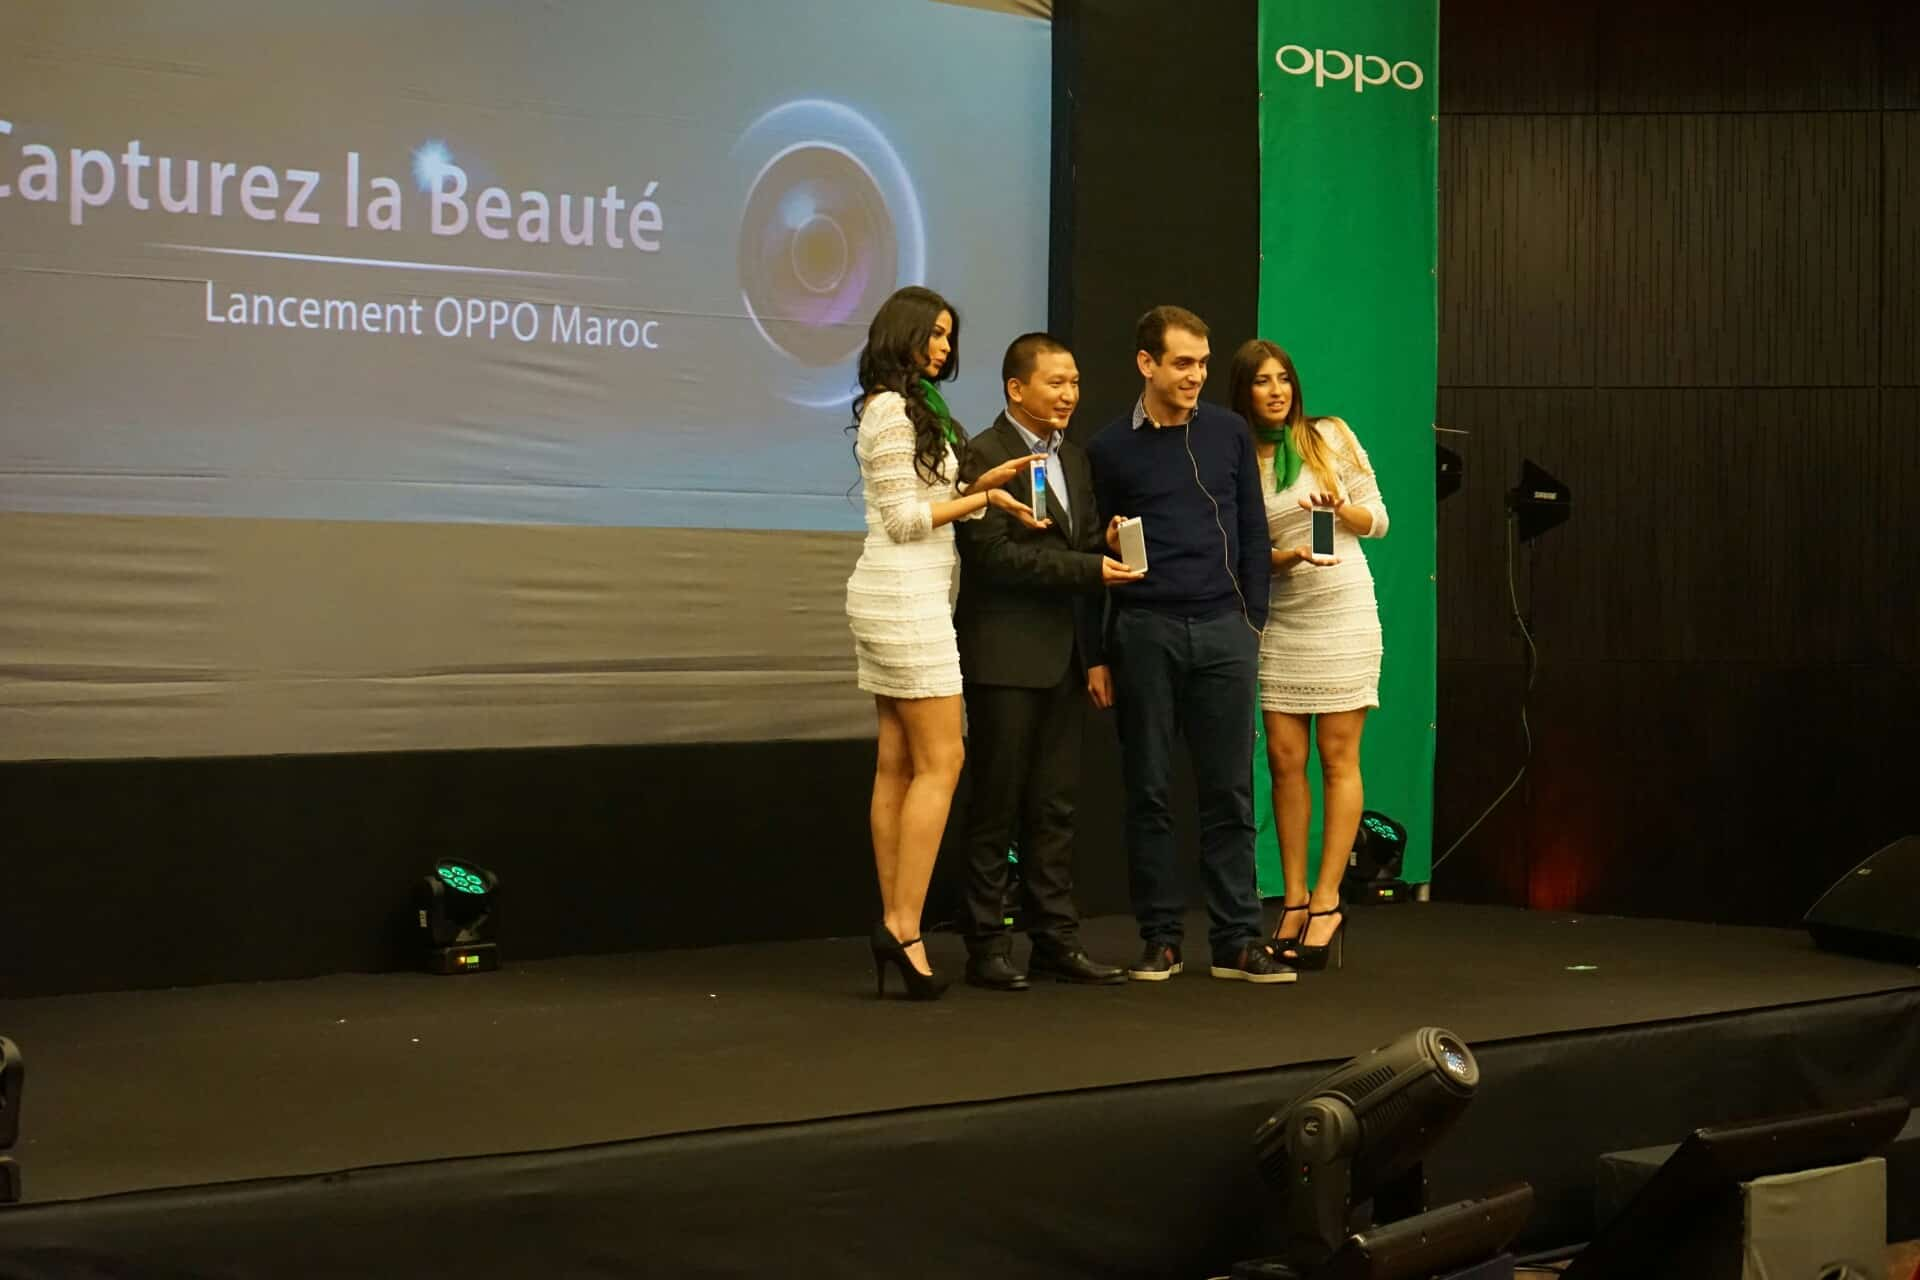 Oppo event in Morocco_2